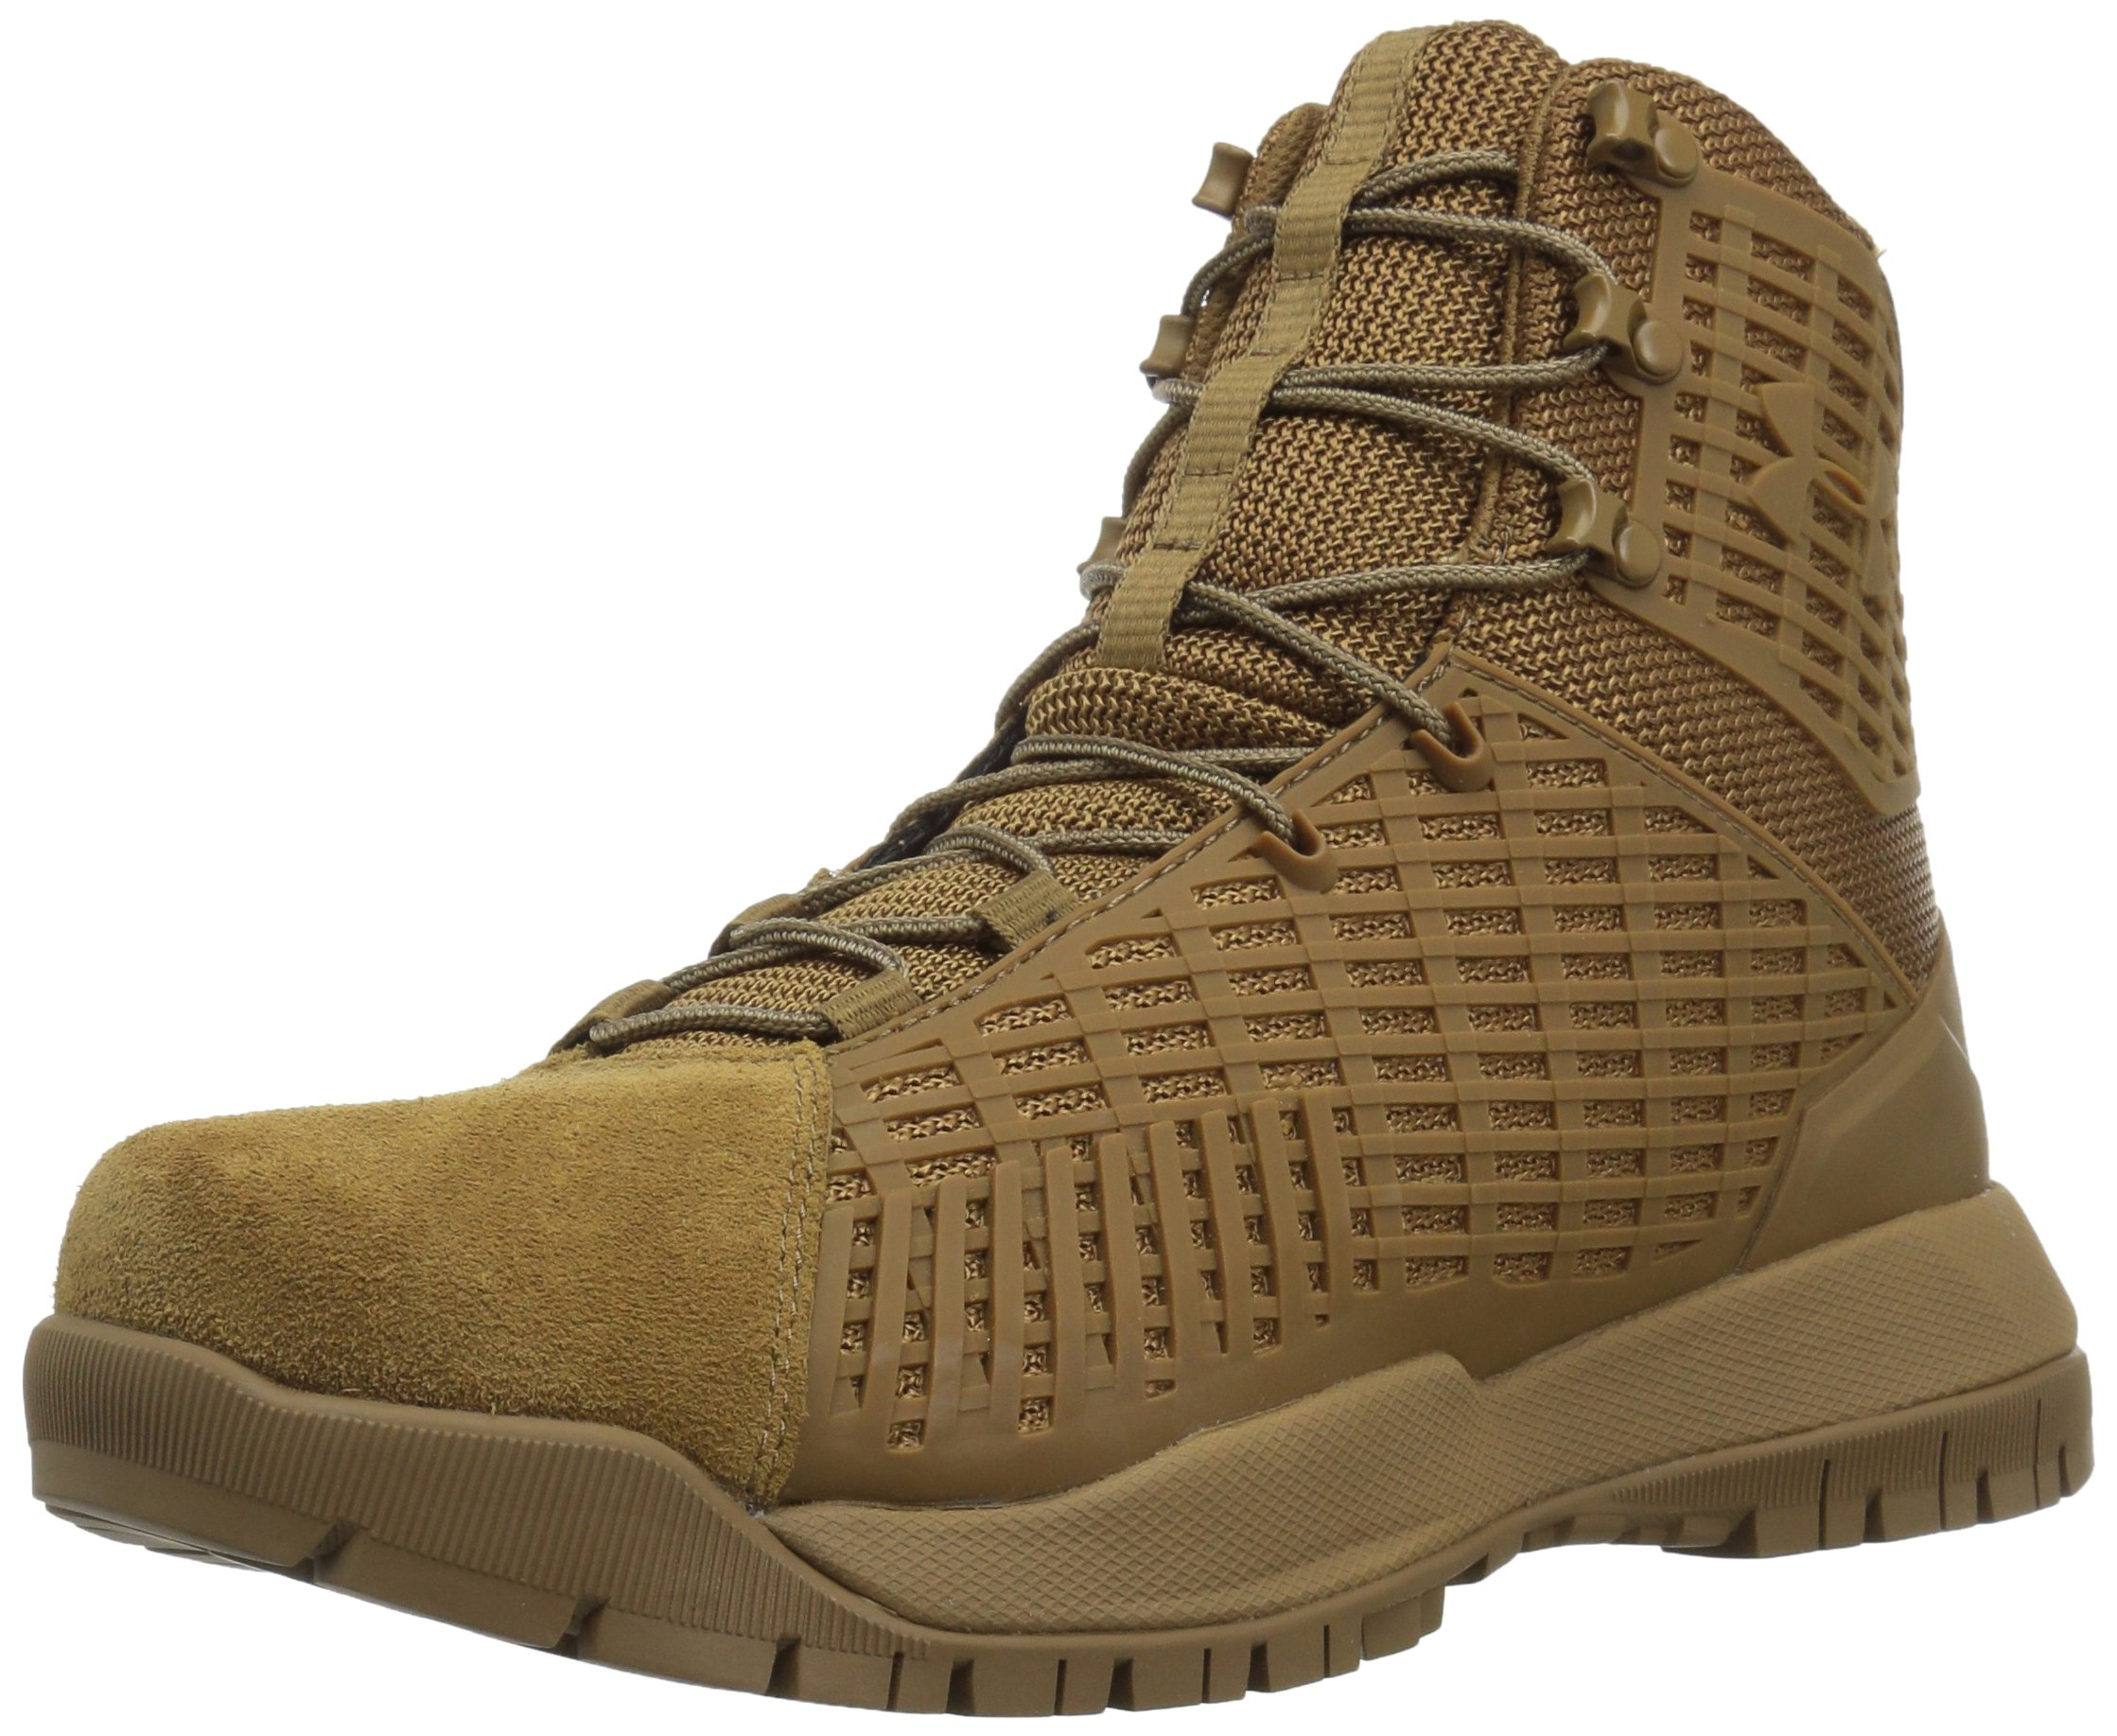 Under Armour Women's Stryker Military and Tactical Boot, (728)/Coyote Brown, 8 by Under Armour